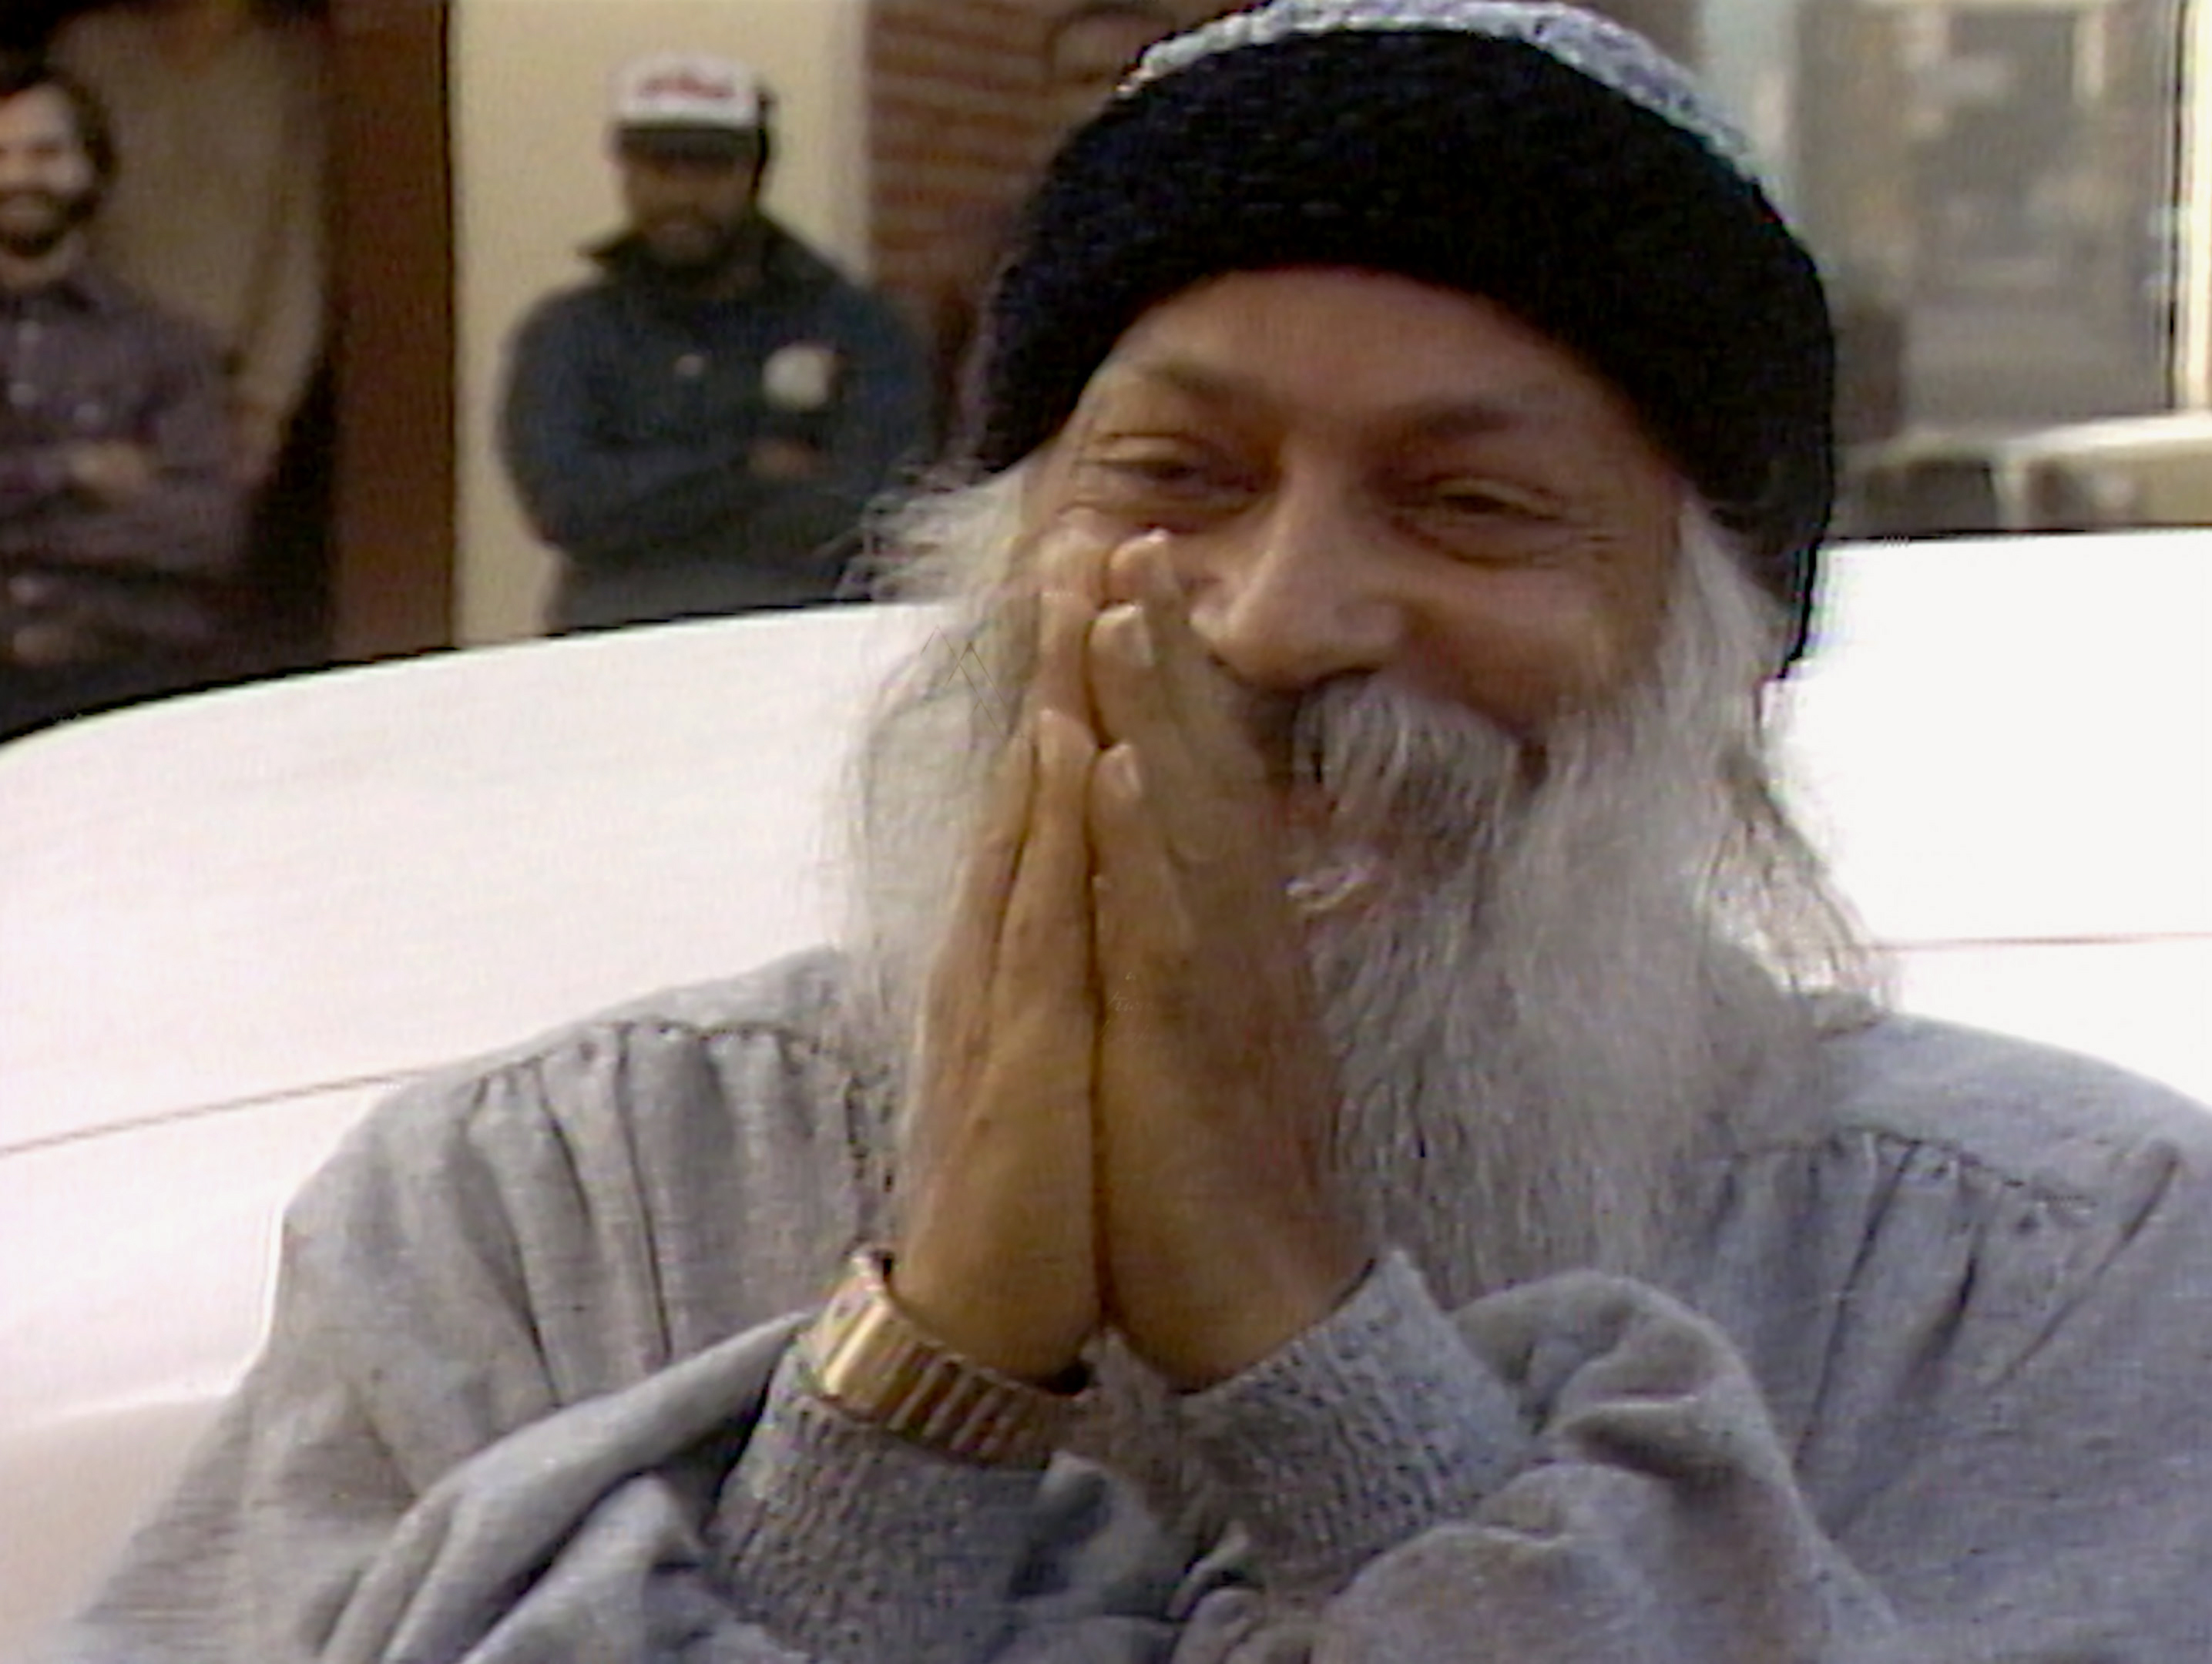 Wild Wild Country Doesnt Include This Horrific Rajneesh